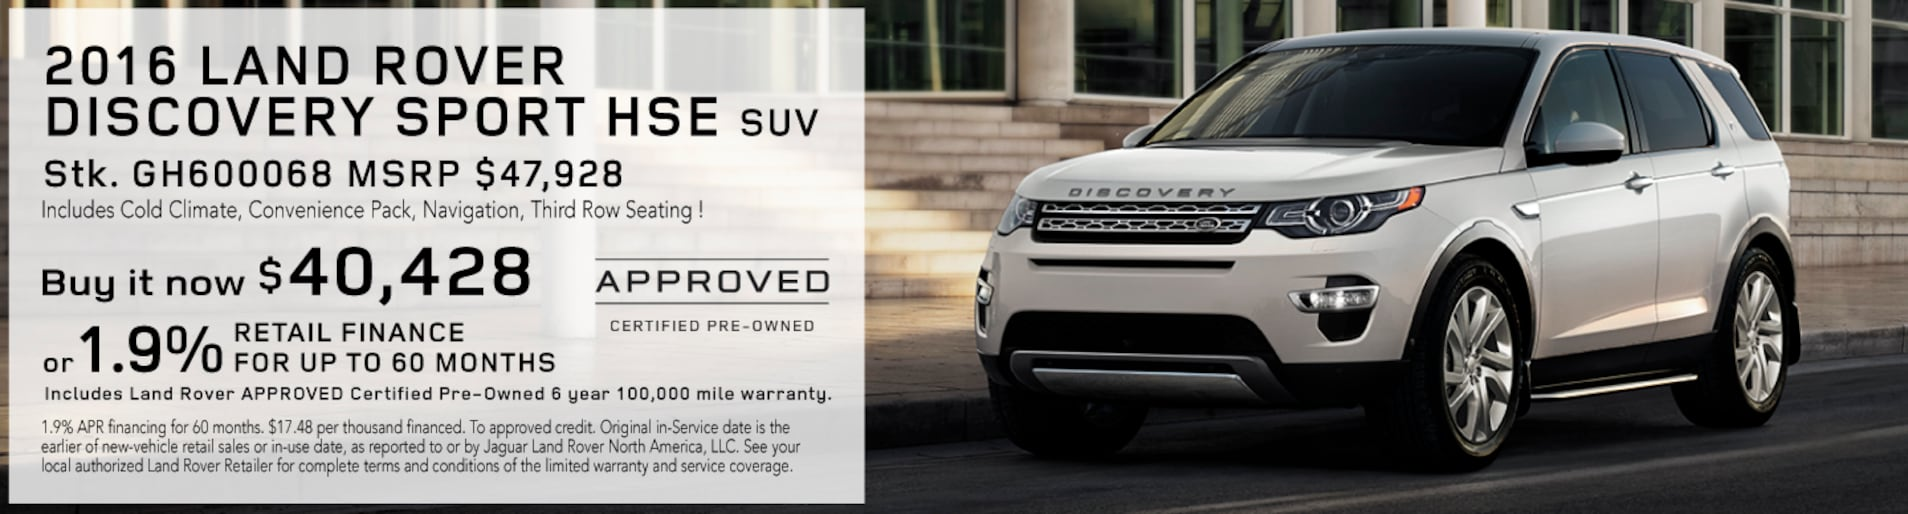 view larger cars click thumbnail image chicago sale for rover a in to land landrover range